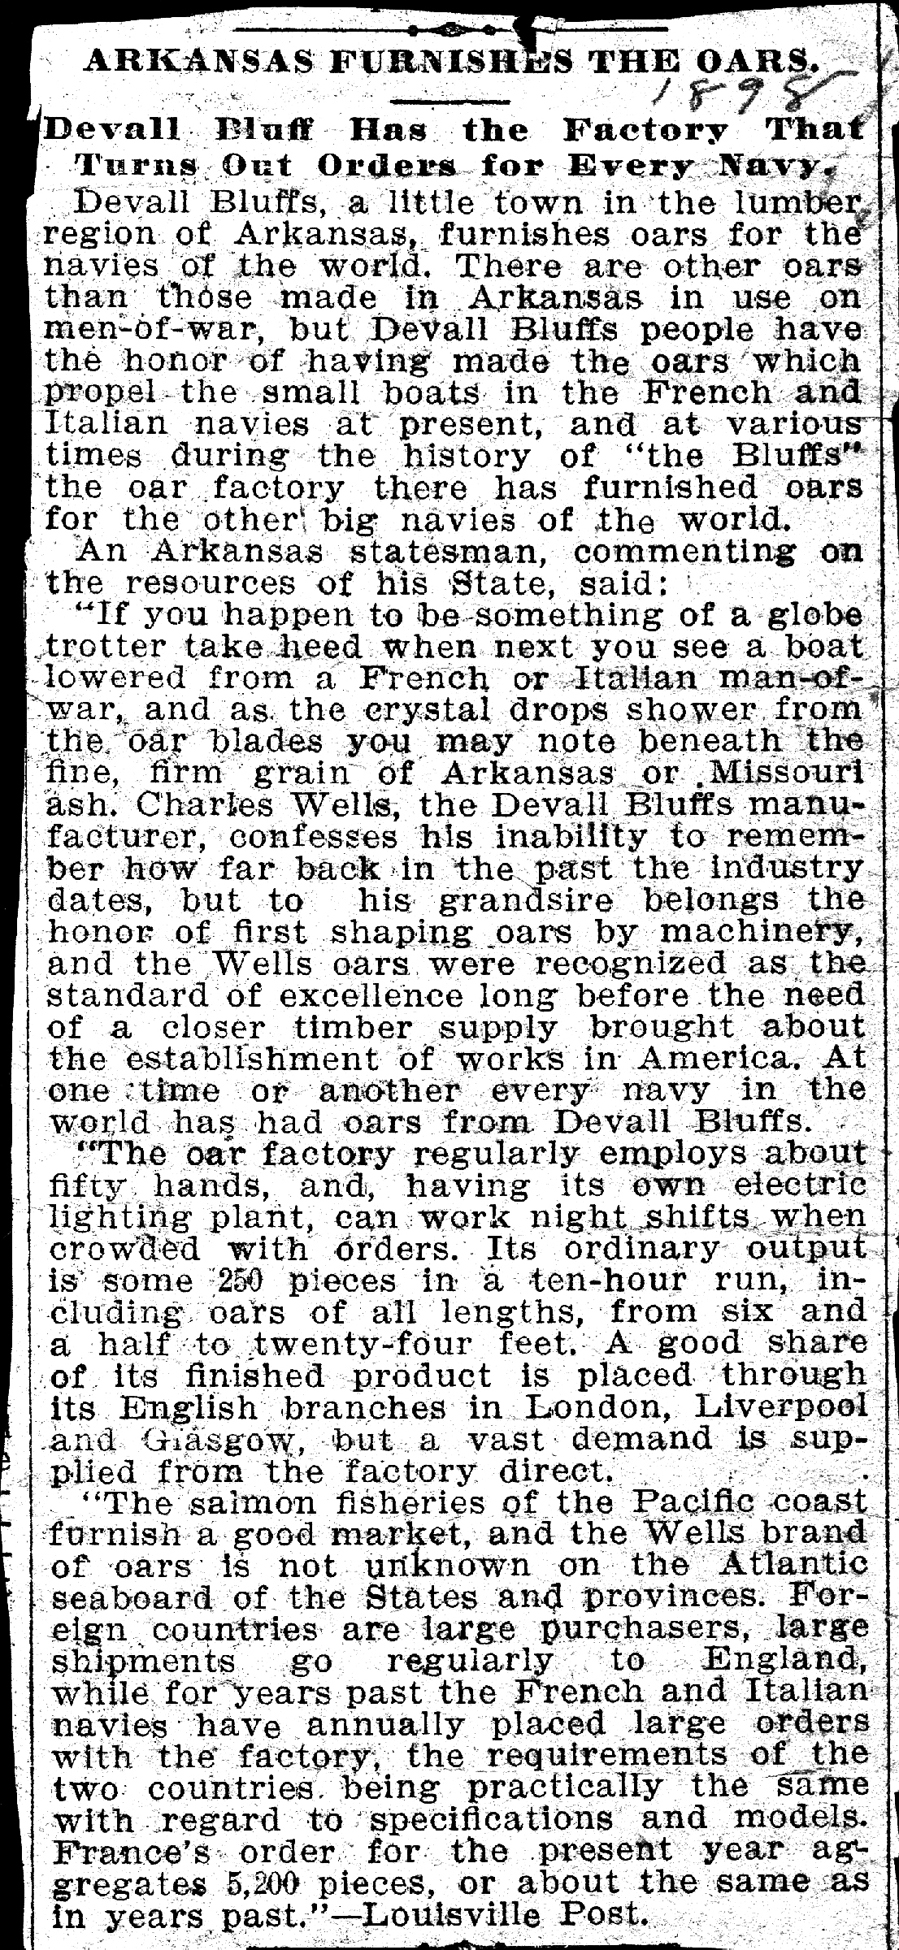 1898 Arkansas Furnishes the Oars